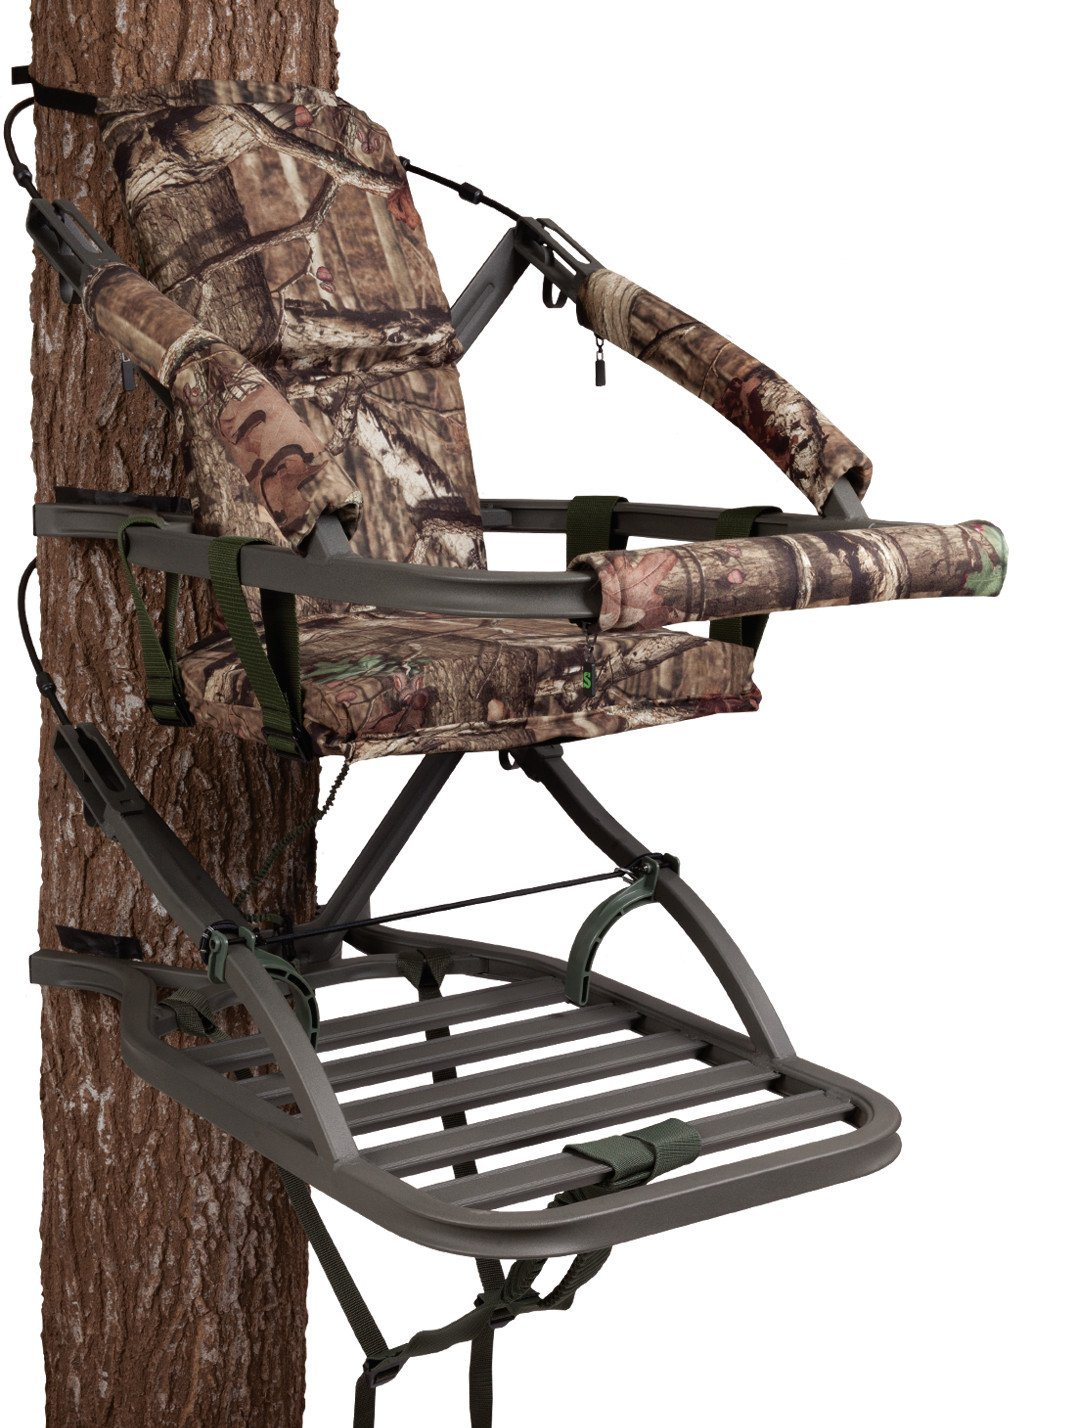 Camouflage Summit Viper SD Climbing Tree Stand gift.